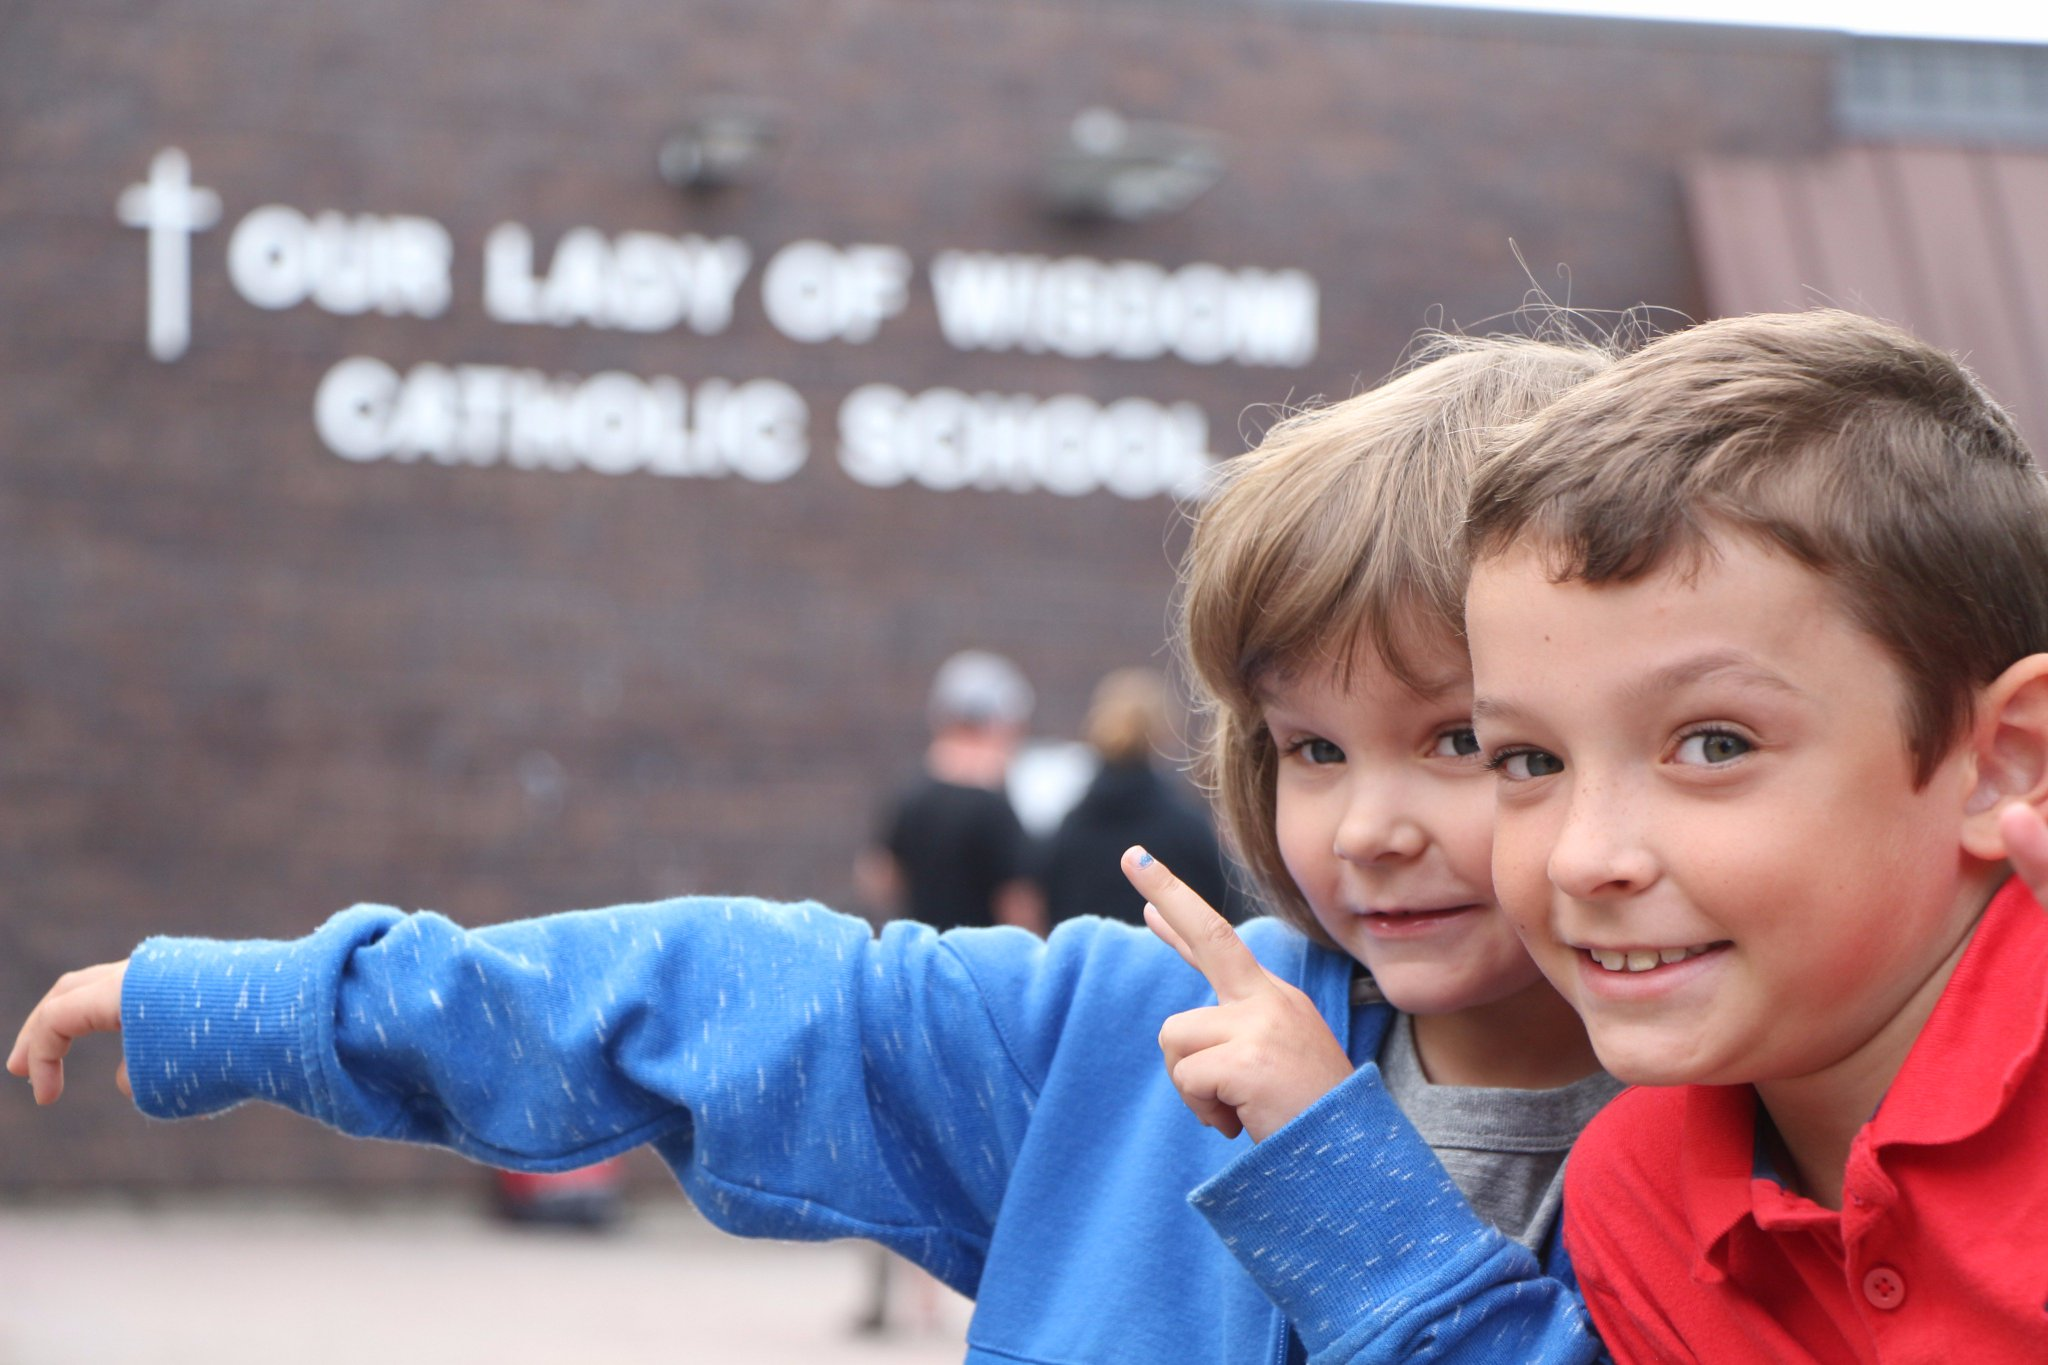 Happy first day of school! They were excited to see their friends and teachers @WISCatholic. #ocsbFirstDay https://t.co/6MCU2wd6MO